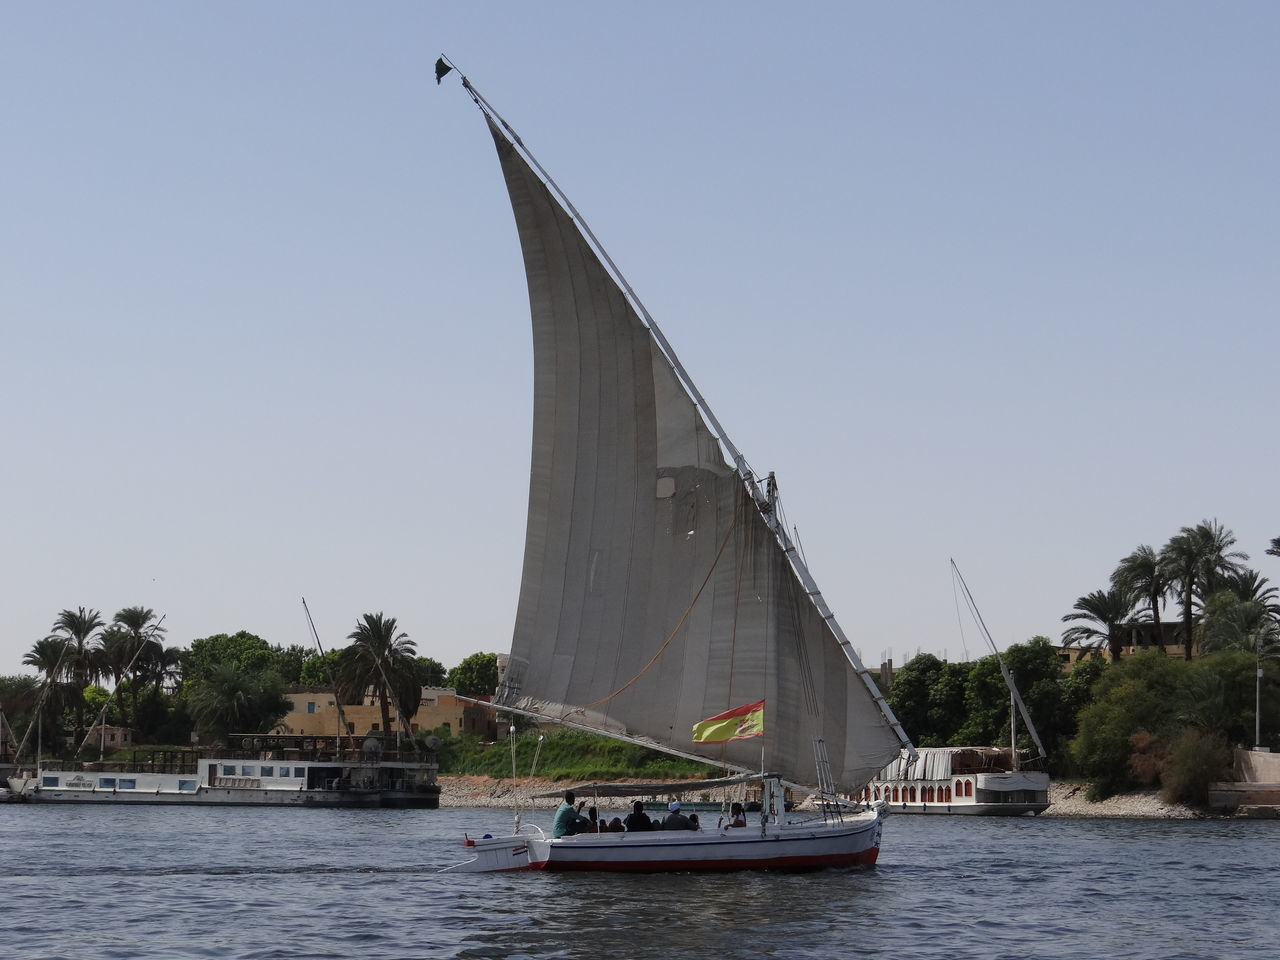 Boat Day Luxor Luxor View Nautical Vessel Nile Nile Boat Nile River No People Outdoors Sailboat Sailing Sky Transportation Yachting